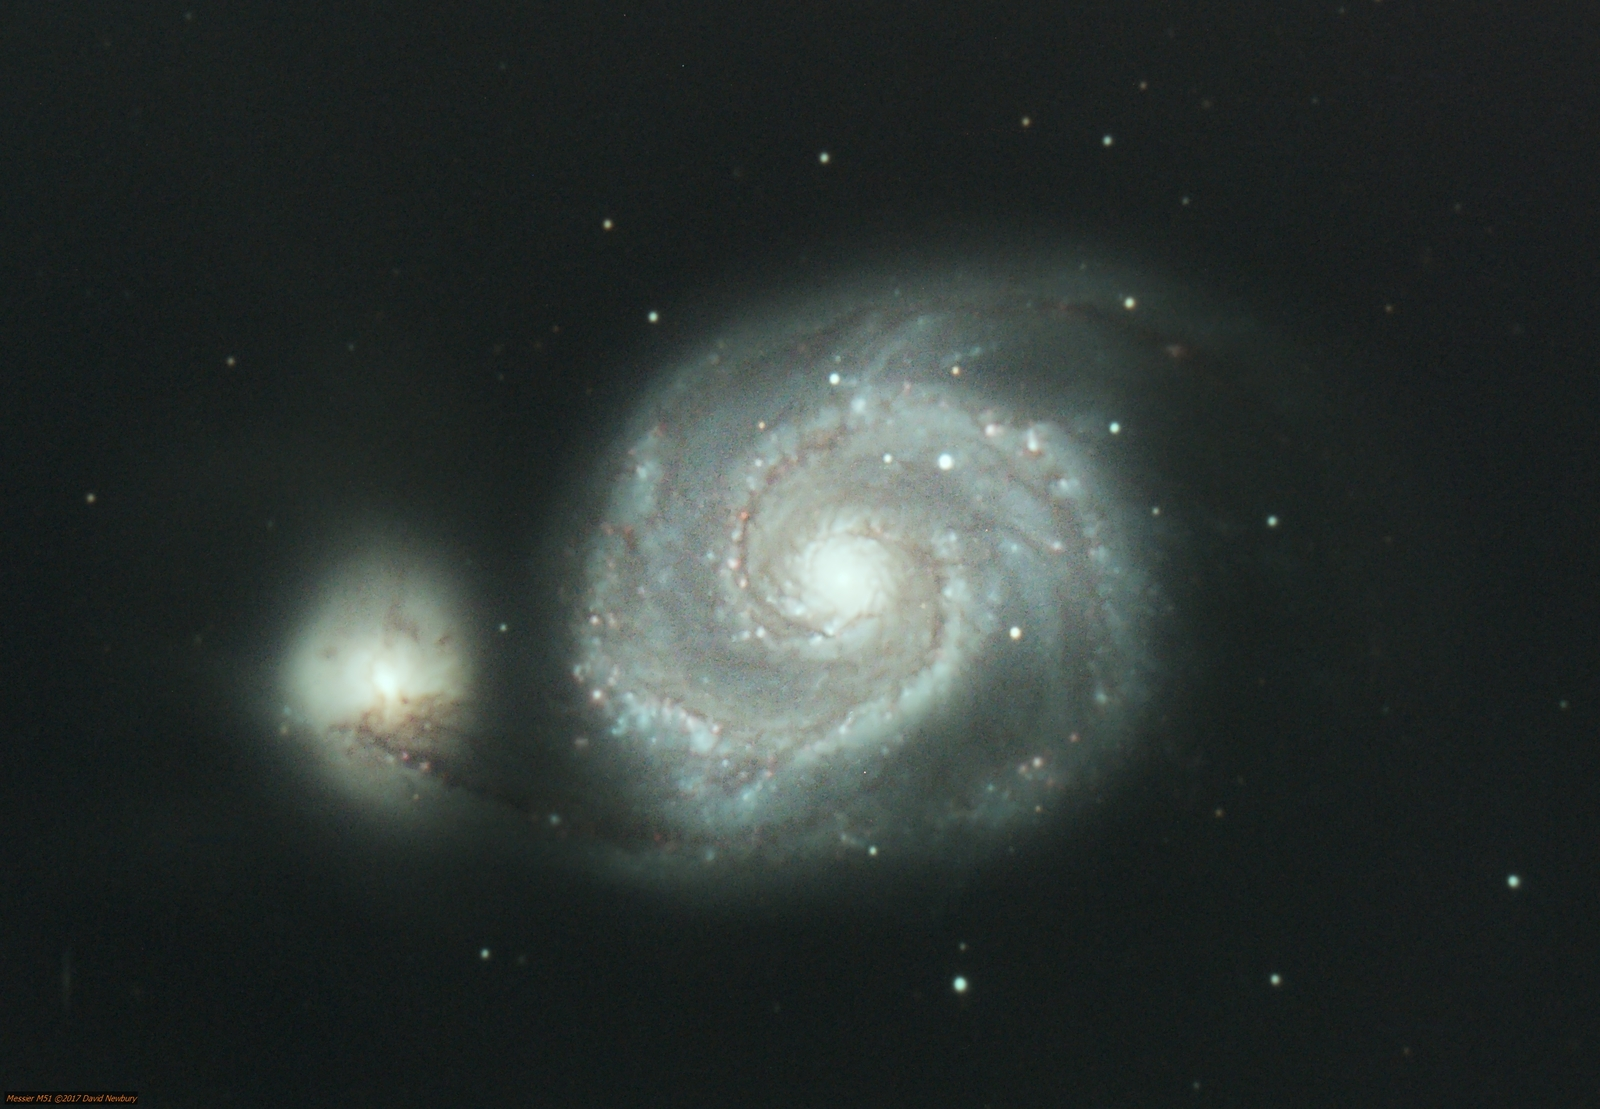 M51 over several nights over February and March 2017.